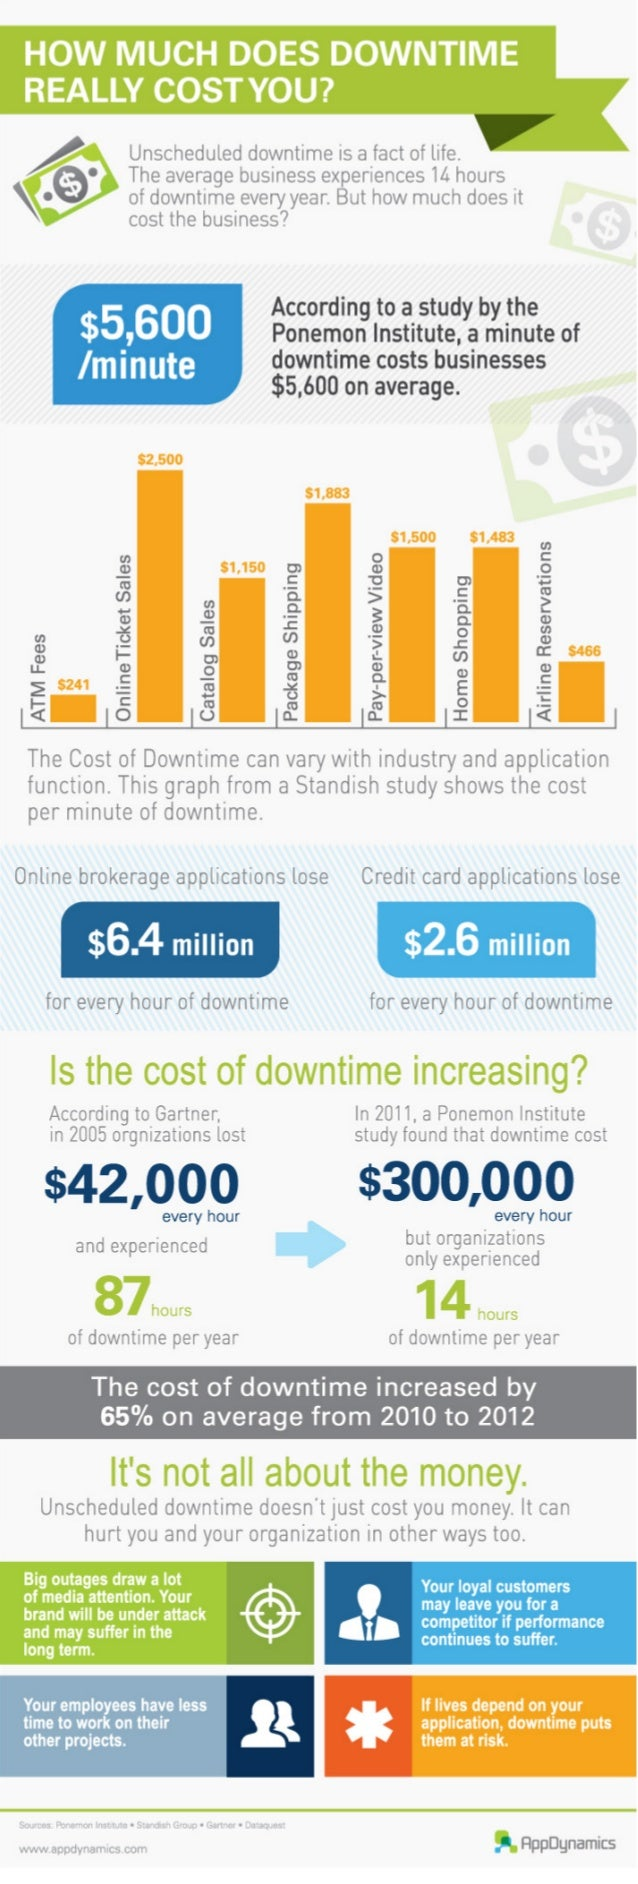 How Much Does Downtime Really Cost You?